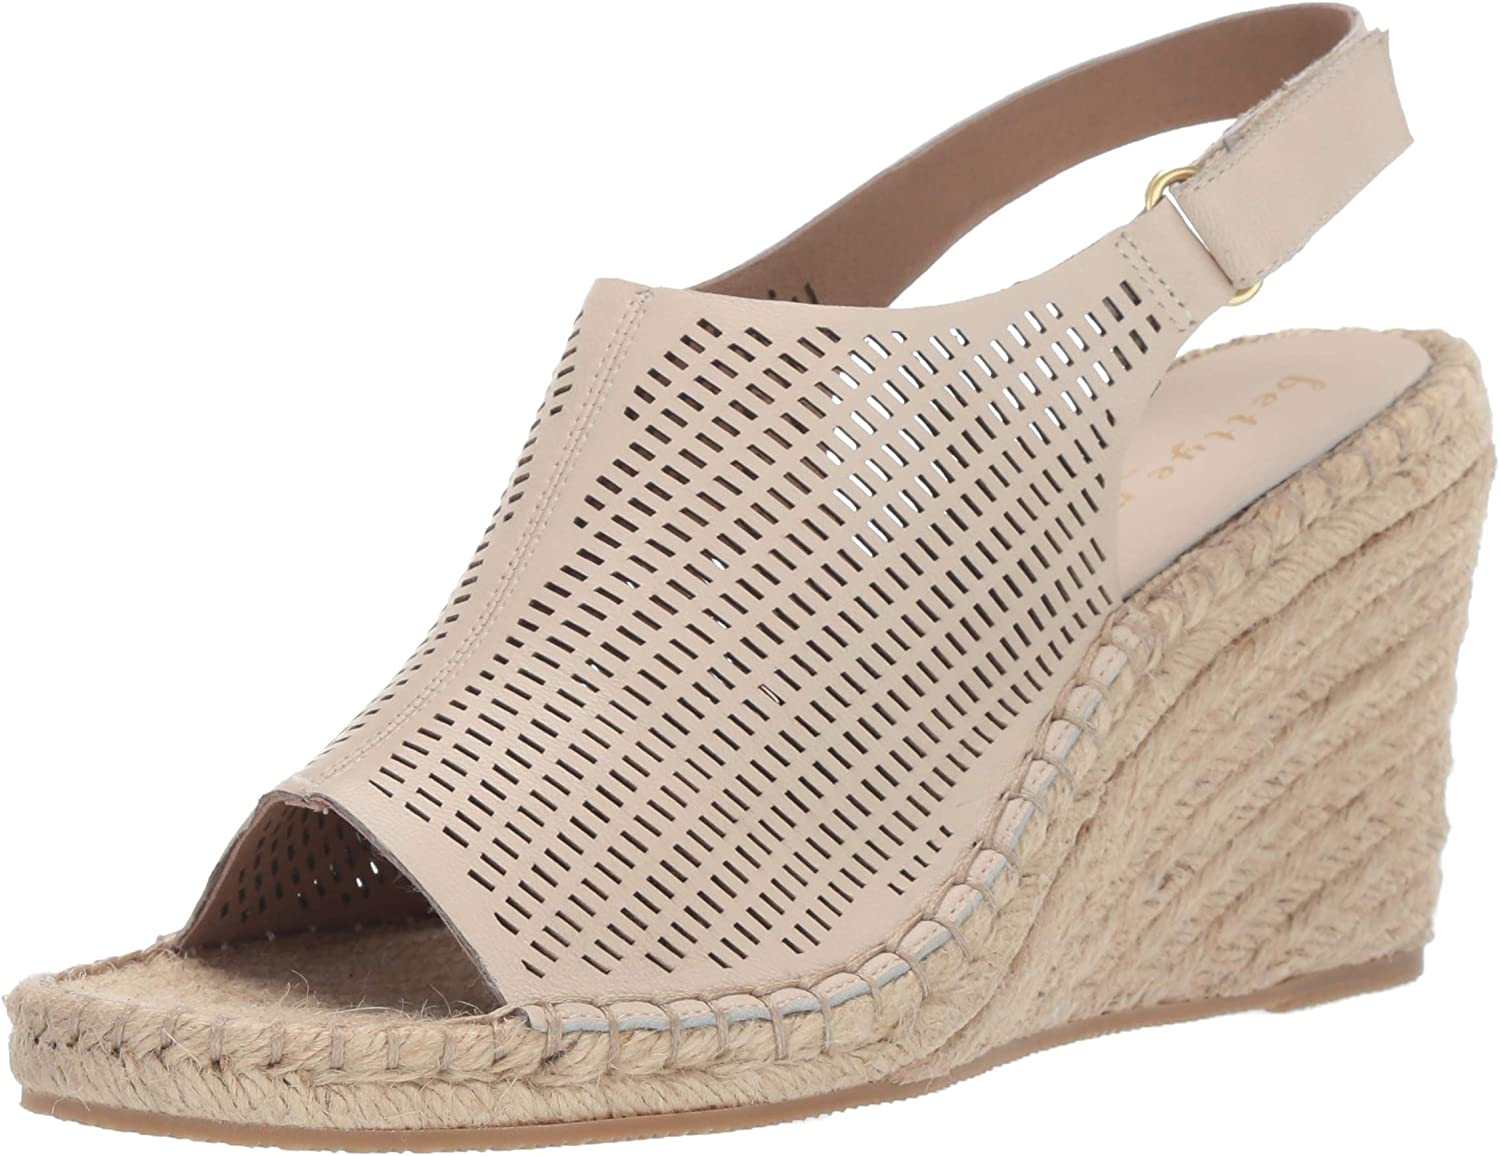 Bettye Muller Women's supreme Vicente Espadrille Selling and selling Sandal Wedge